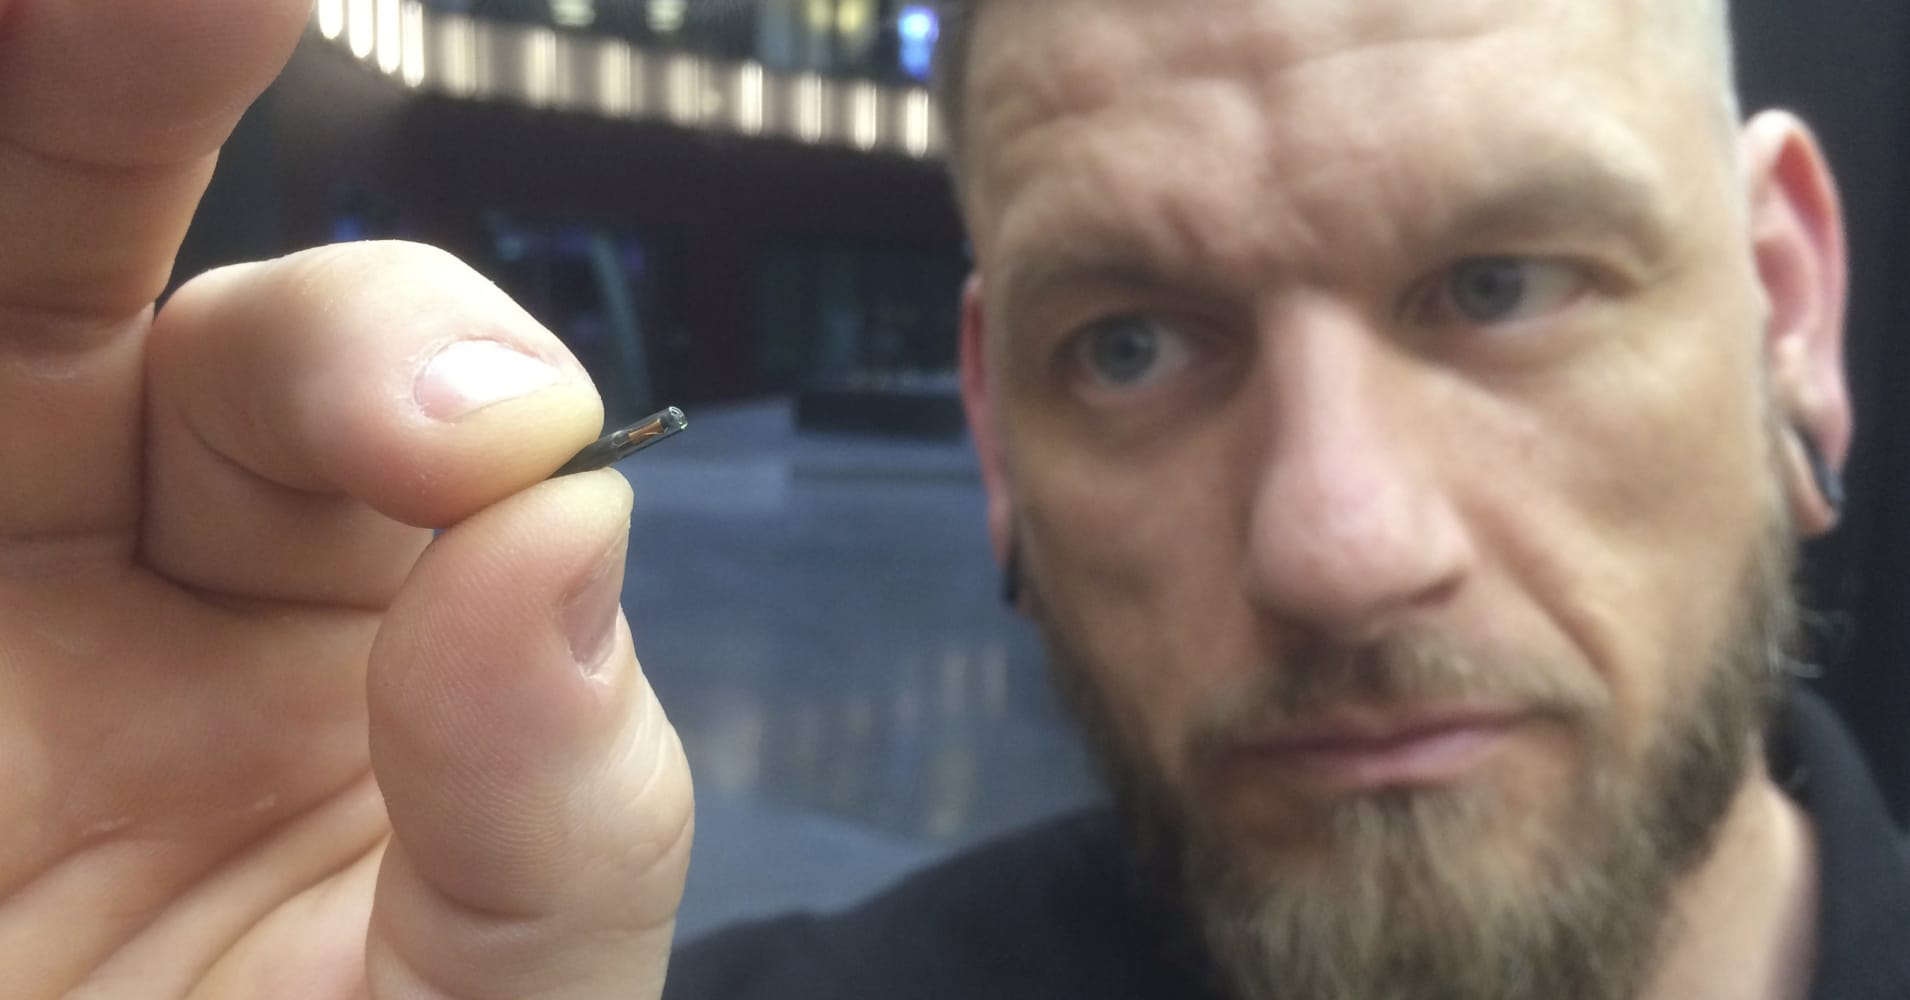 Jowan Osterlund of Biohax with one of the company's implantable microchips. Three Square Market, a company in Wisconsin, is partnering with Biohax to offer the chips to employees. Credit